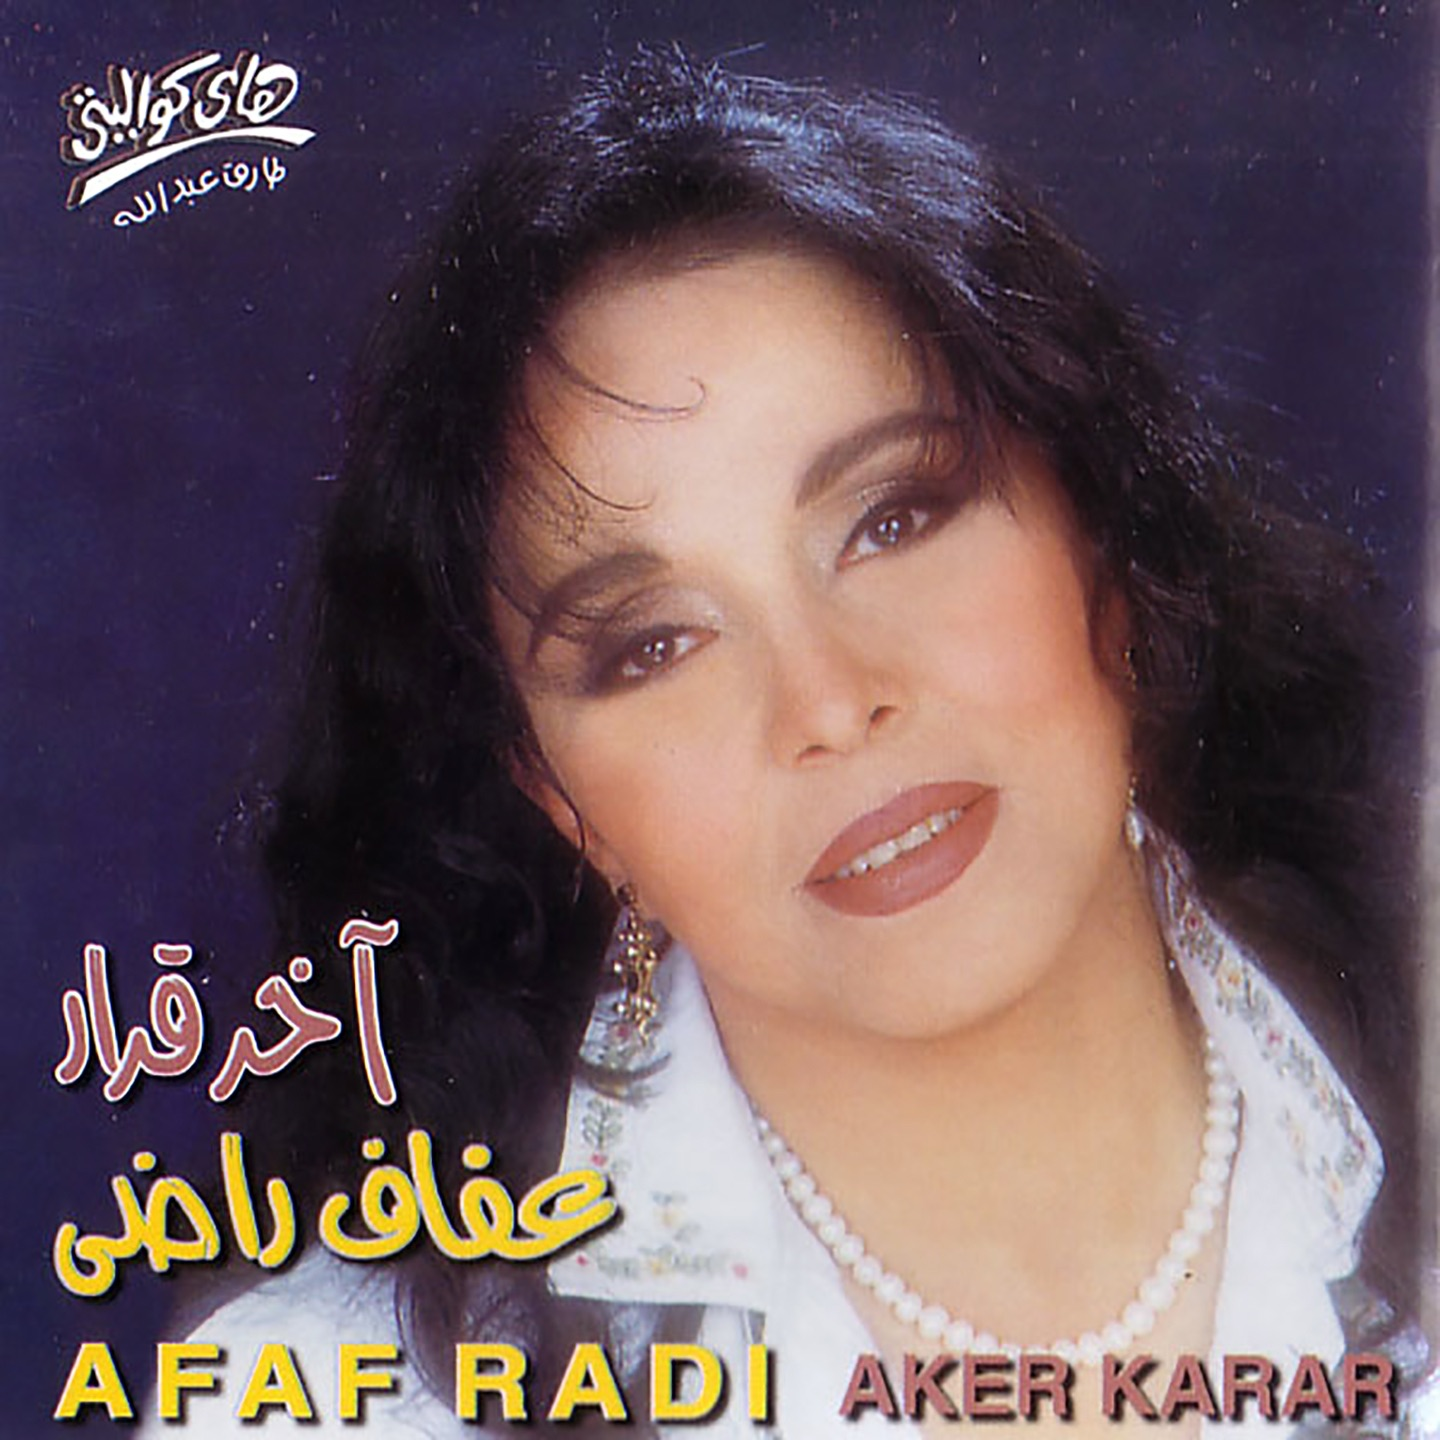 Download album: Aker Karar - artist Afaf Radi: Arabic,Music